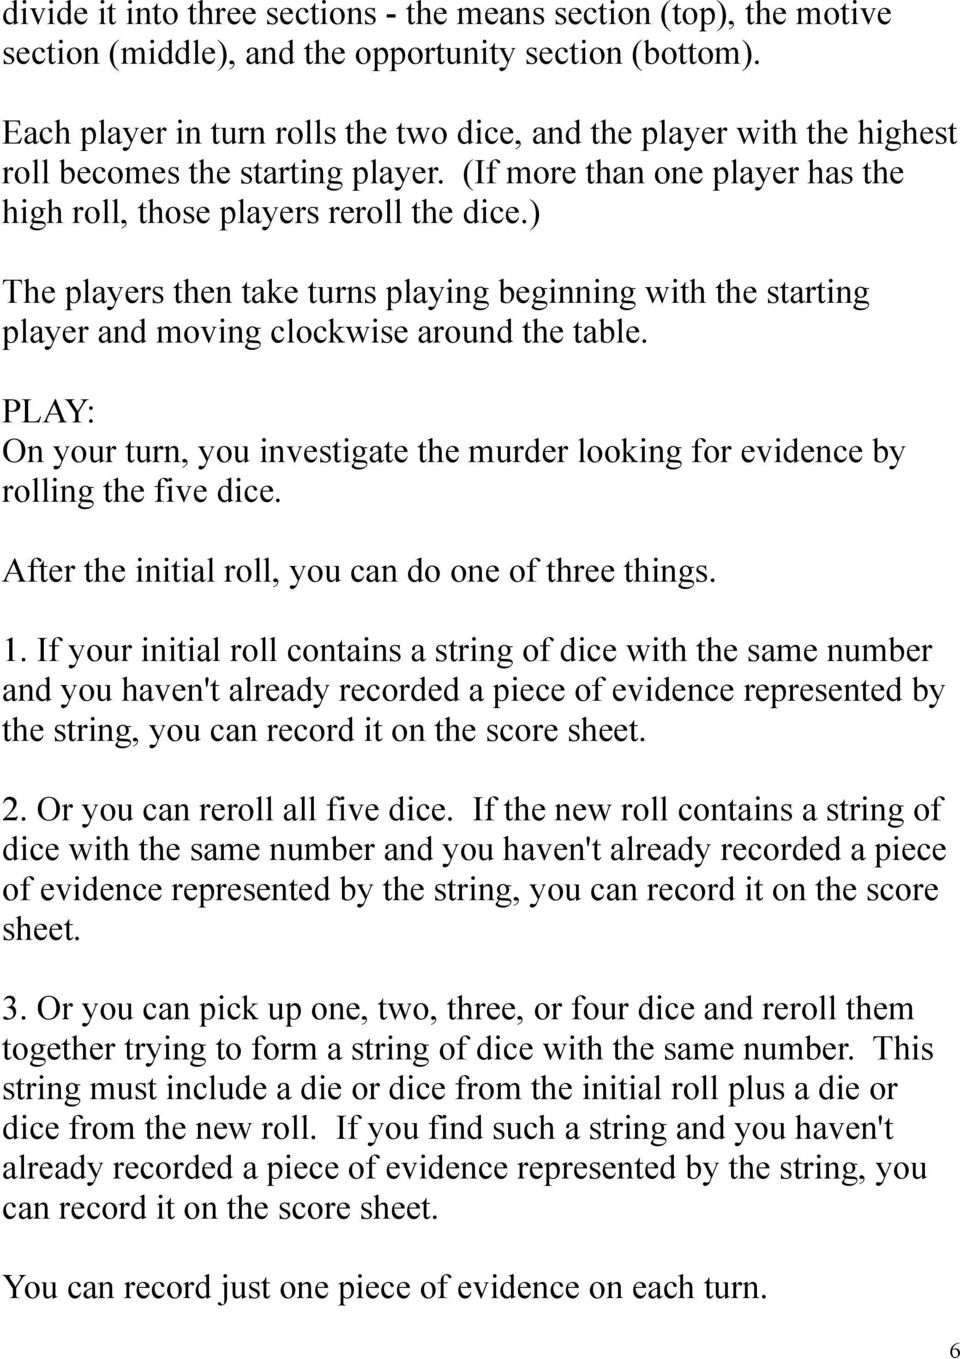 ) The players then take turns playing beginning with the starting player and moving clockwise around the table.